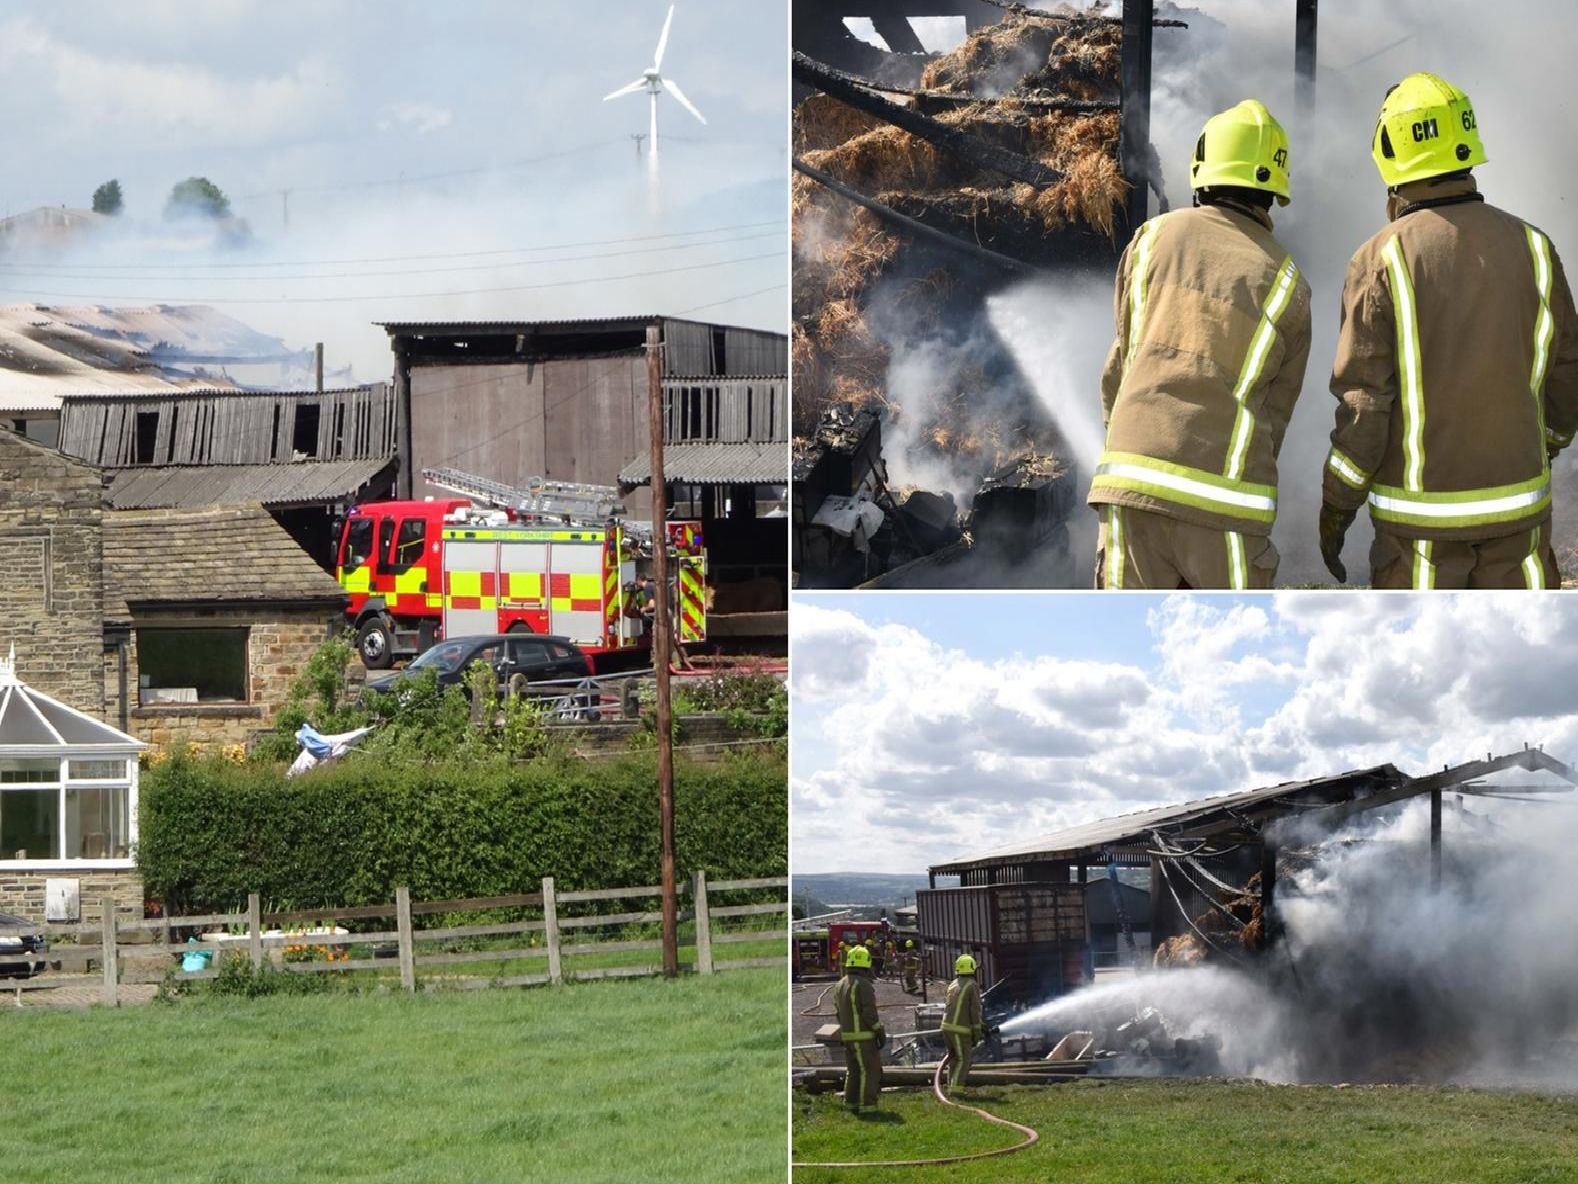 Pictures of the Brighouse barn fire by Stuart Black and WYFRS